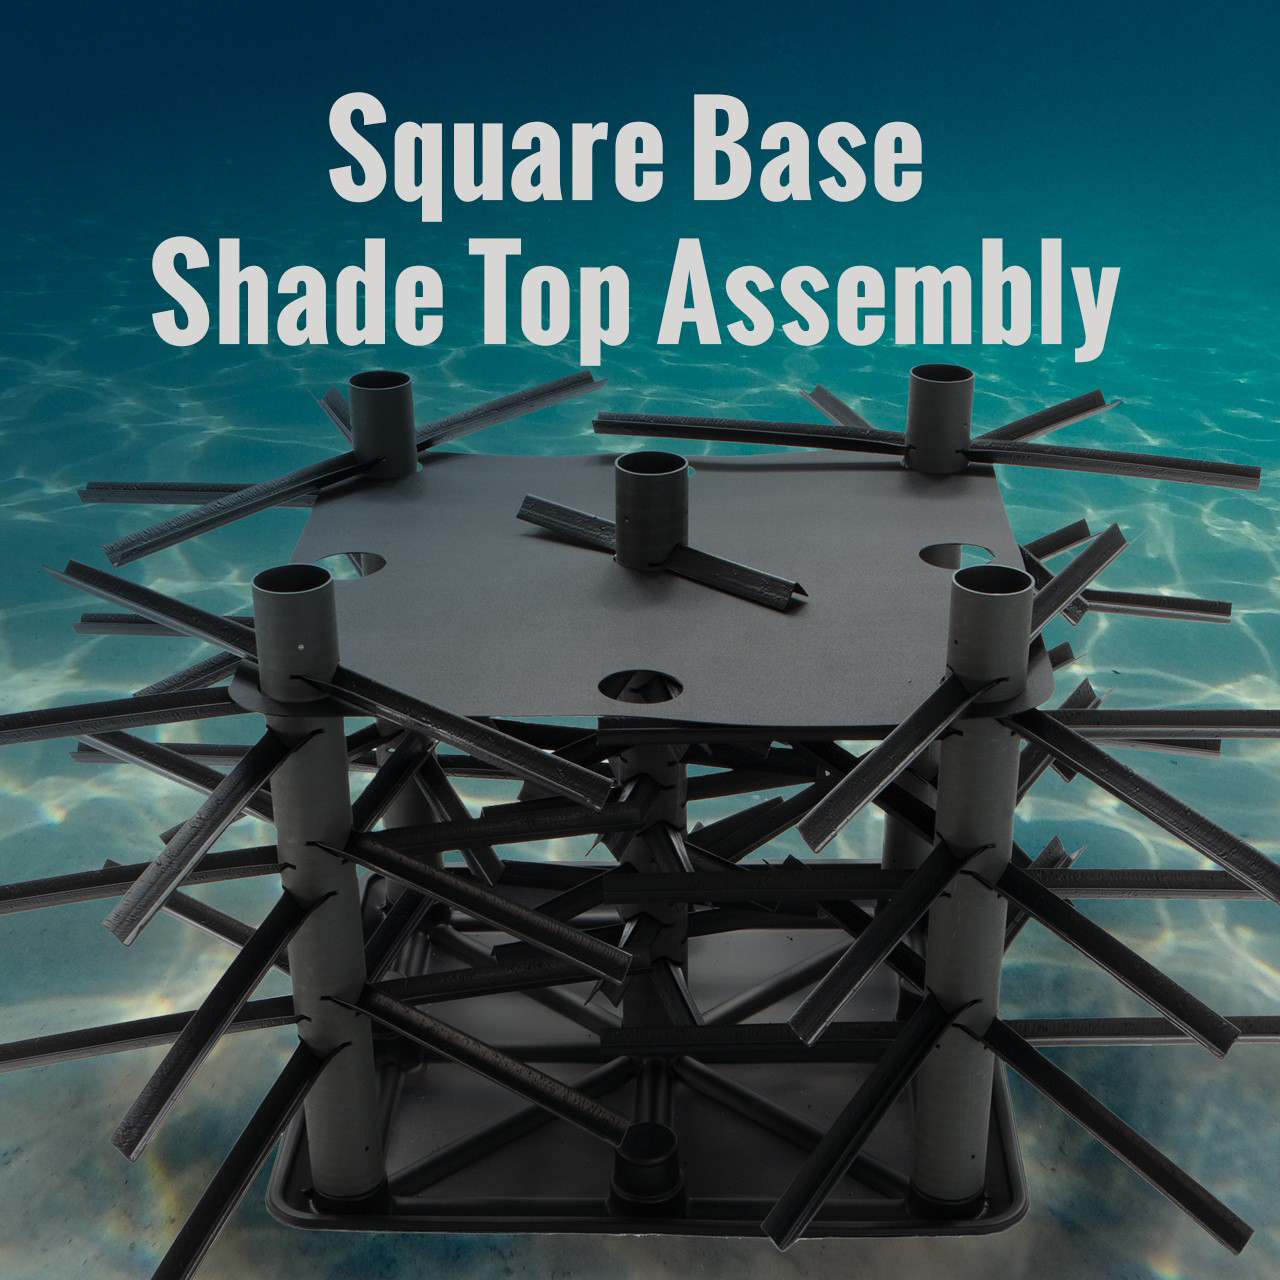 Square Base and Shade Top Assembly